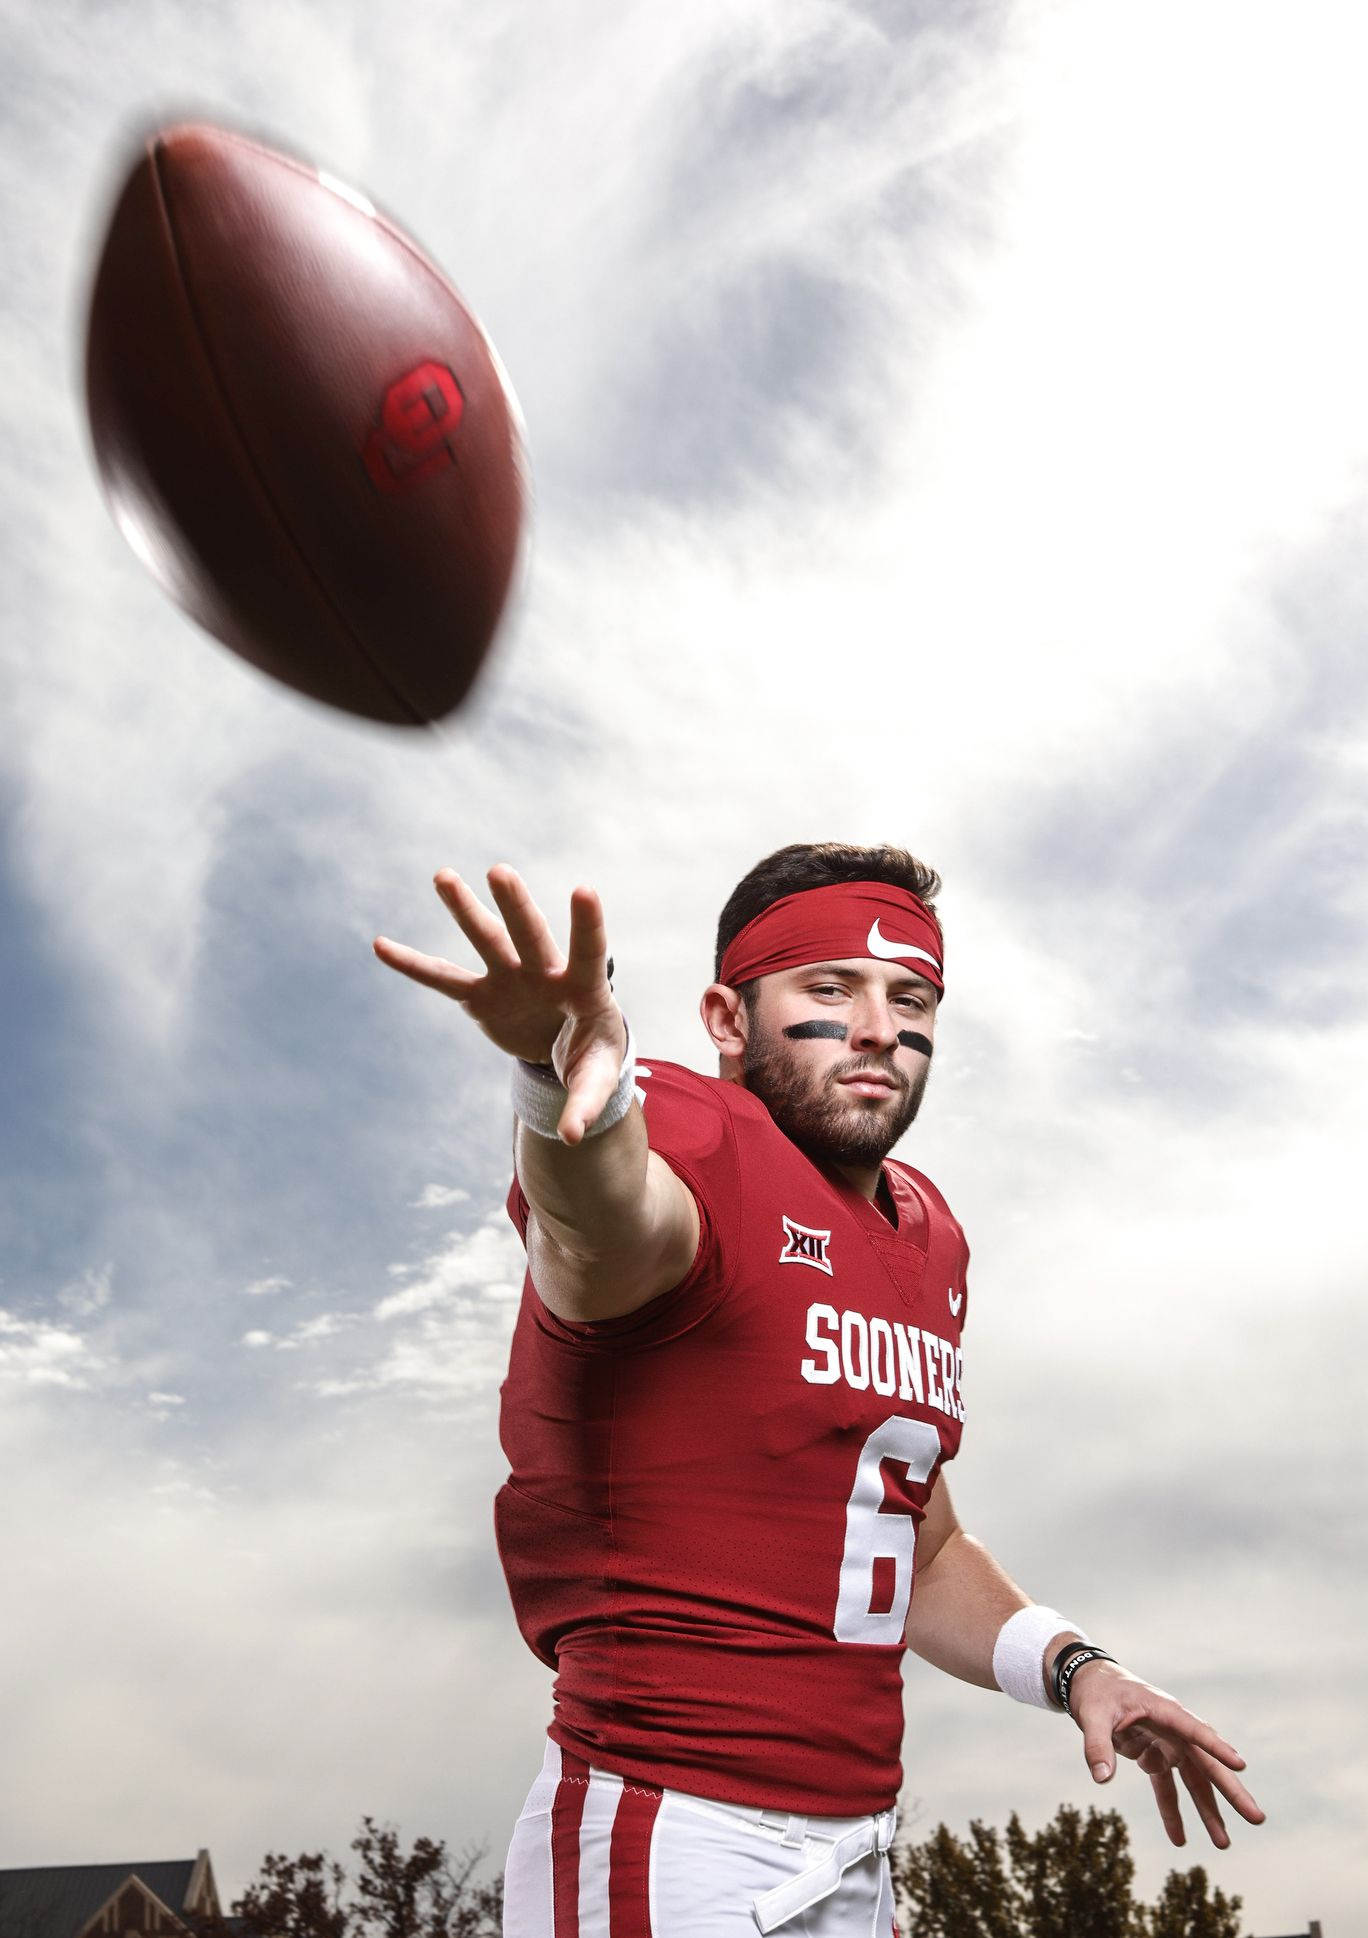 Found on Bing from Oklahoma sooners football